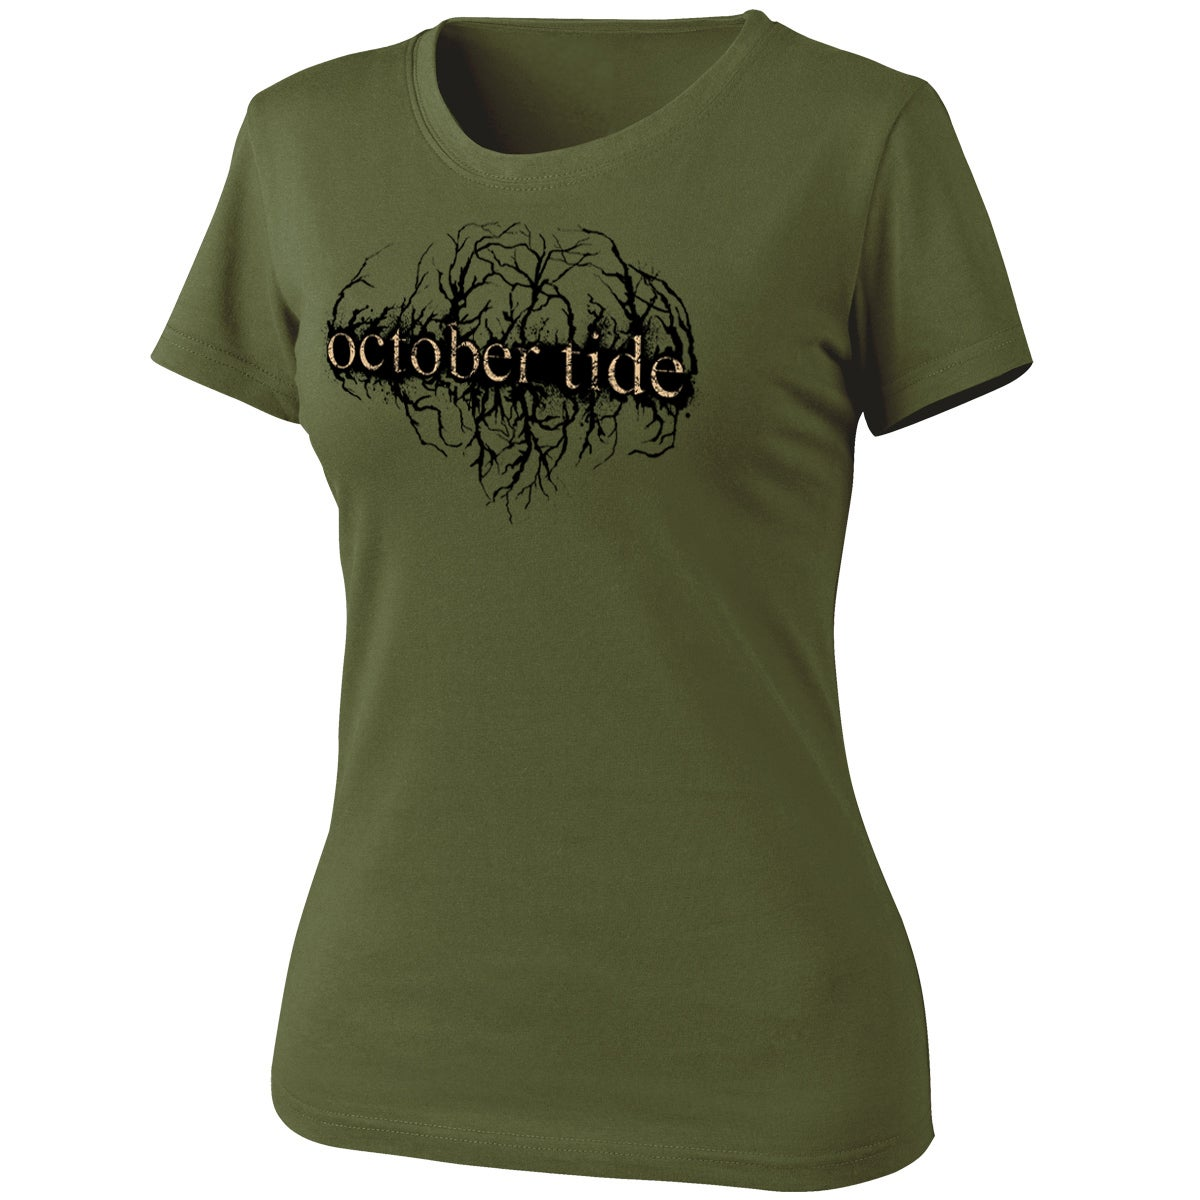 Image of Old/new logo T-shirt (female)